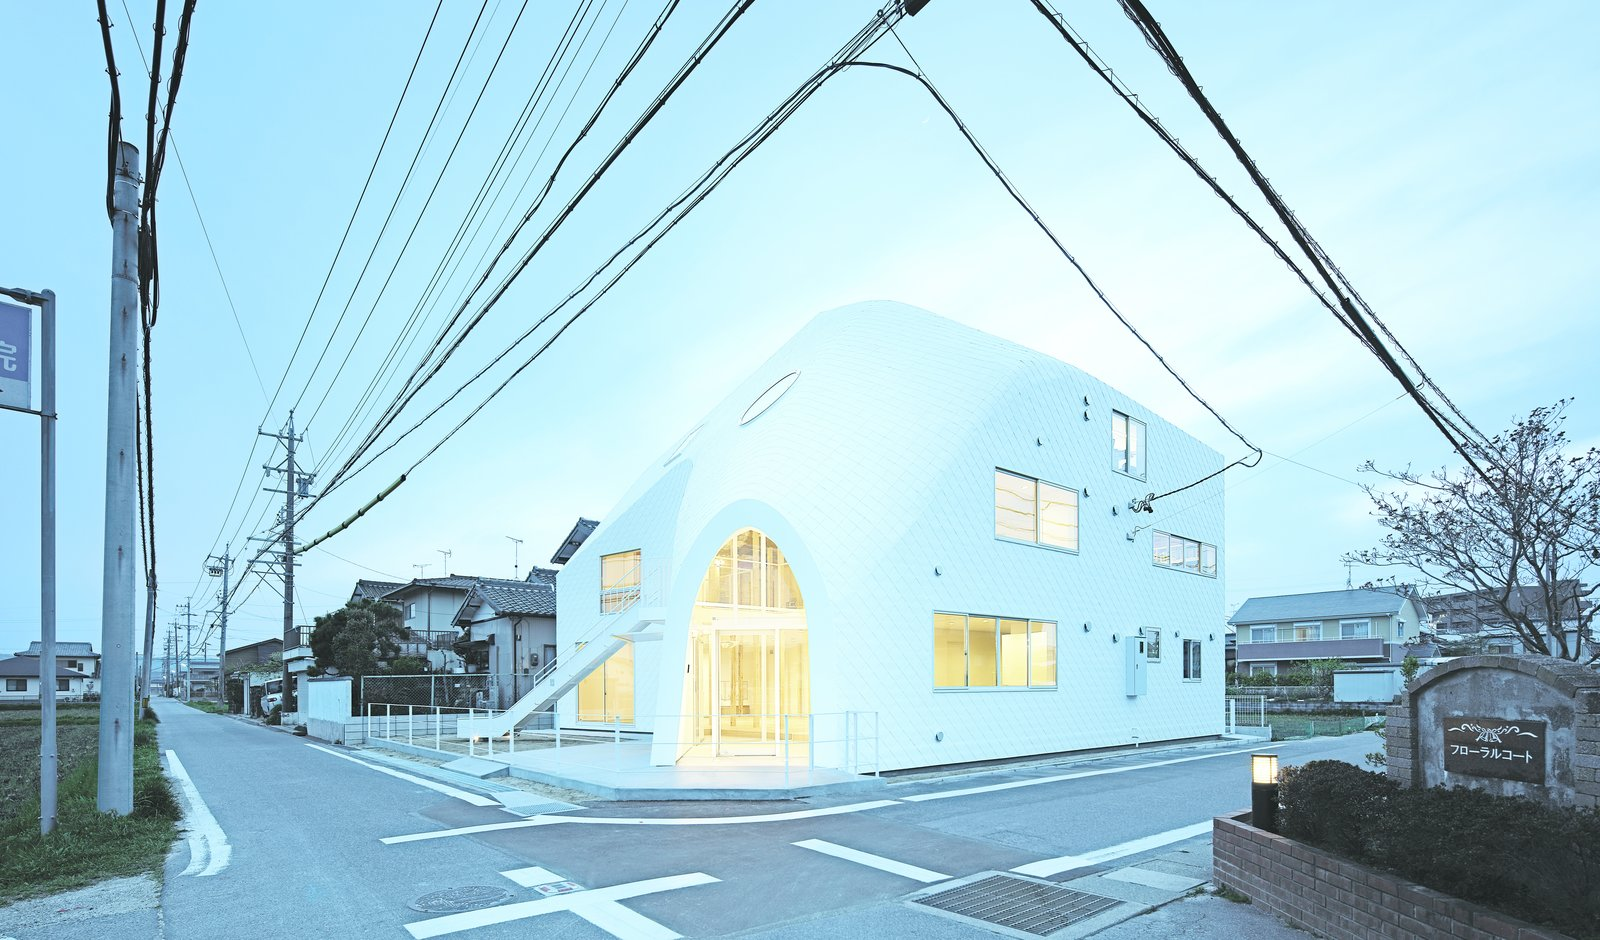 A kindergarten Okazaki, Japan, Clover House is named for its previous life. Originally a 1,100-square-foot residence in a traditional Japanese style, the structure was transformed by MAD Architects in a sculptural example of adaptive reuse wrapped in asphalt shingles. The windows were oriented to bring sunlight and shadow into the space in dynamic ways.  Picture by Koji Fuji   Discover the Fantastical Future Vision of a Beijing Architect